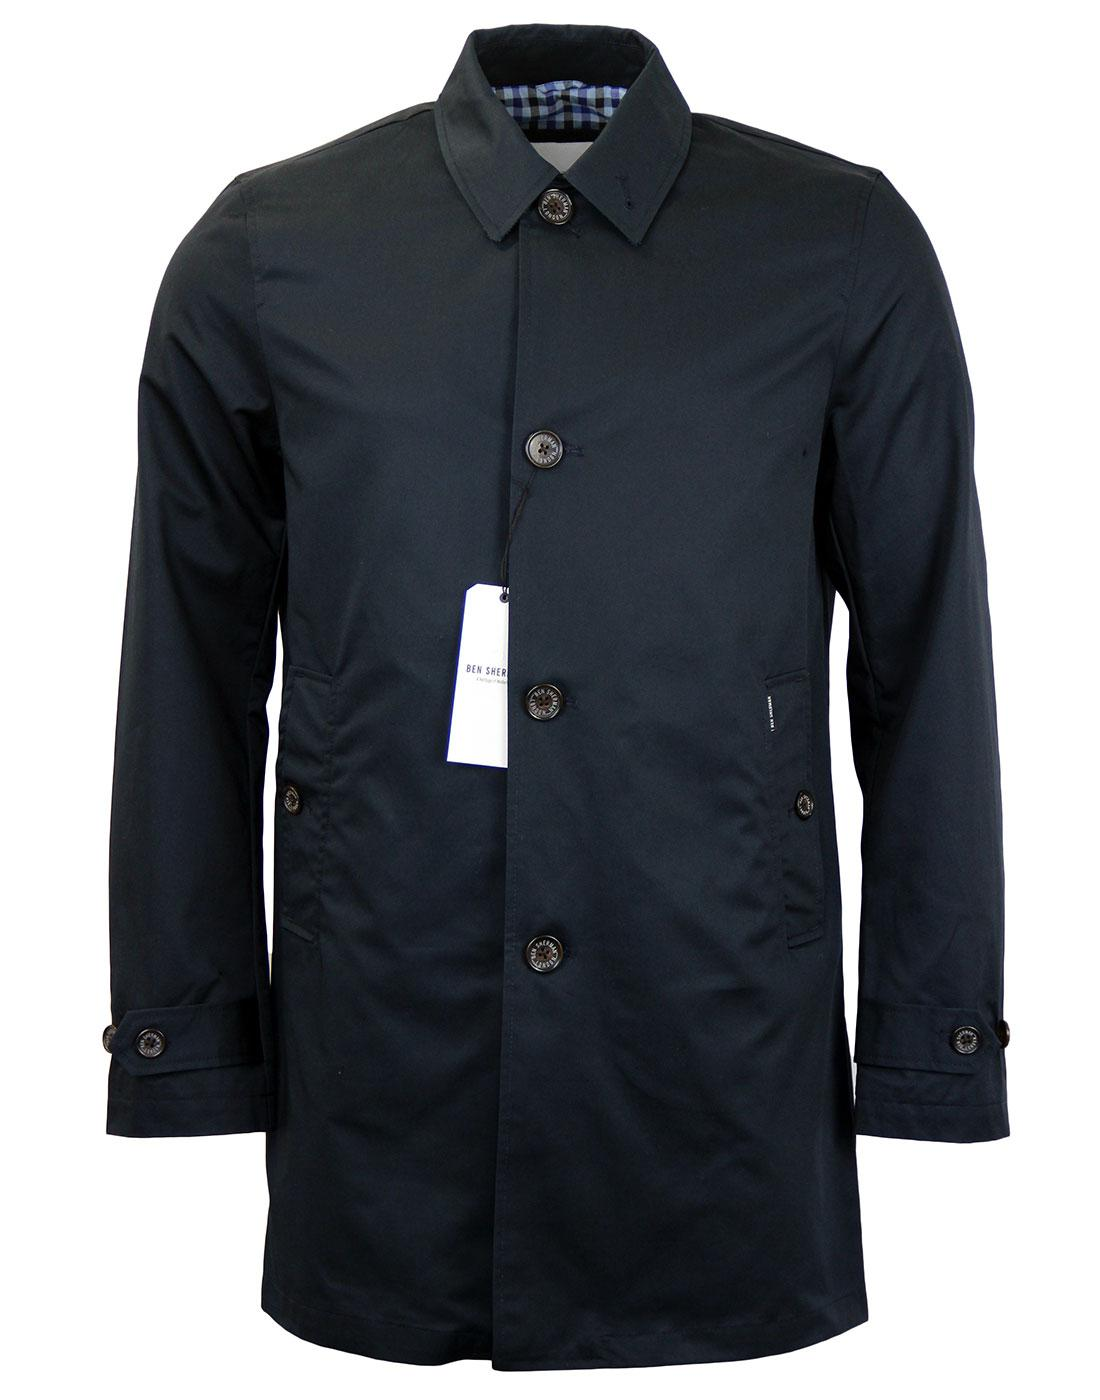 BEN SHERMAN Retro Mod Cotton Twill Mac Jacket